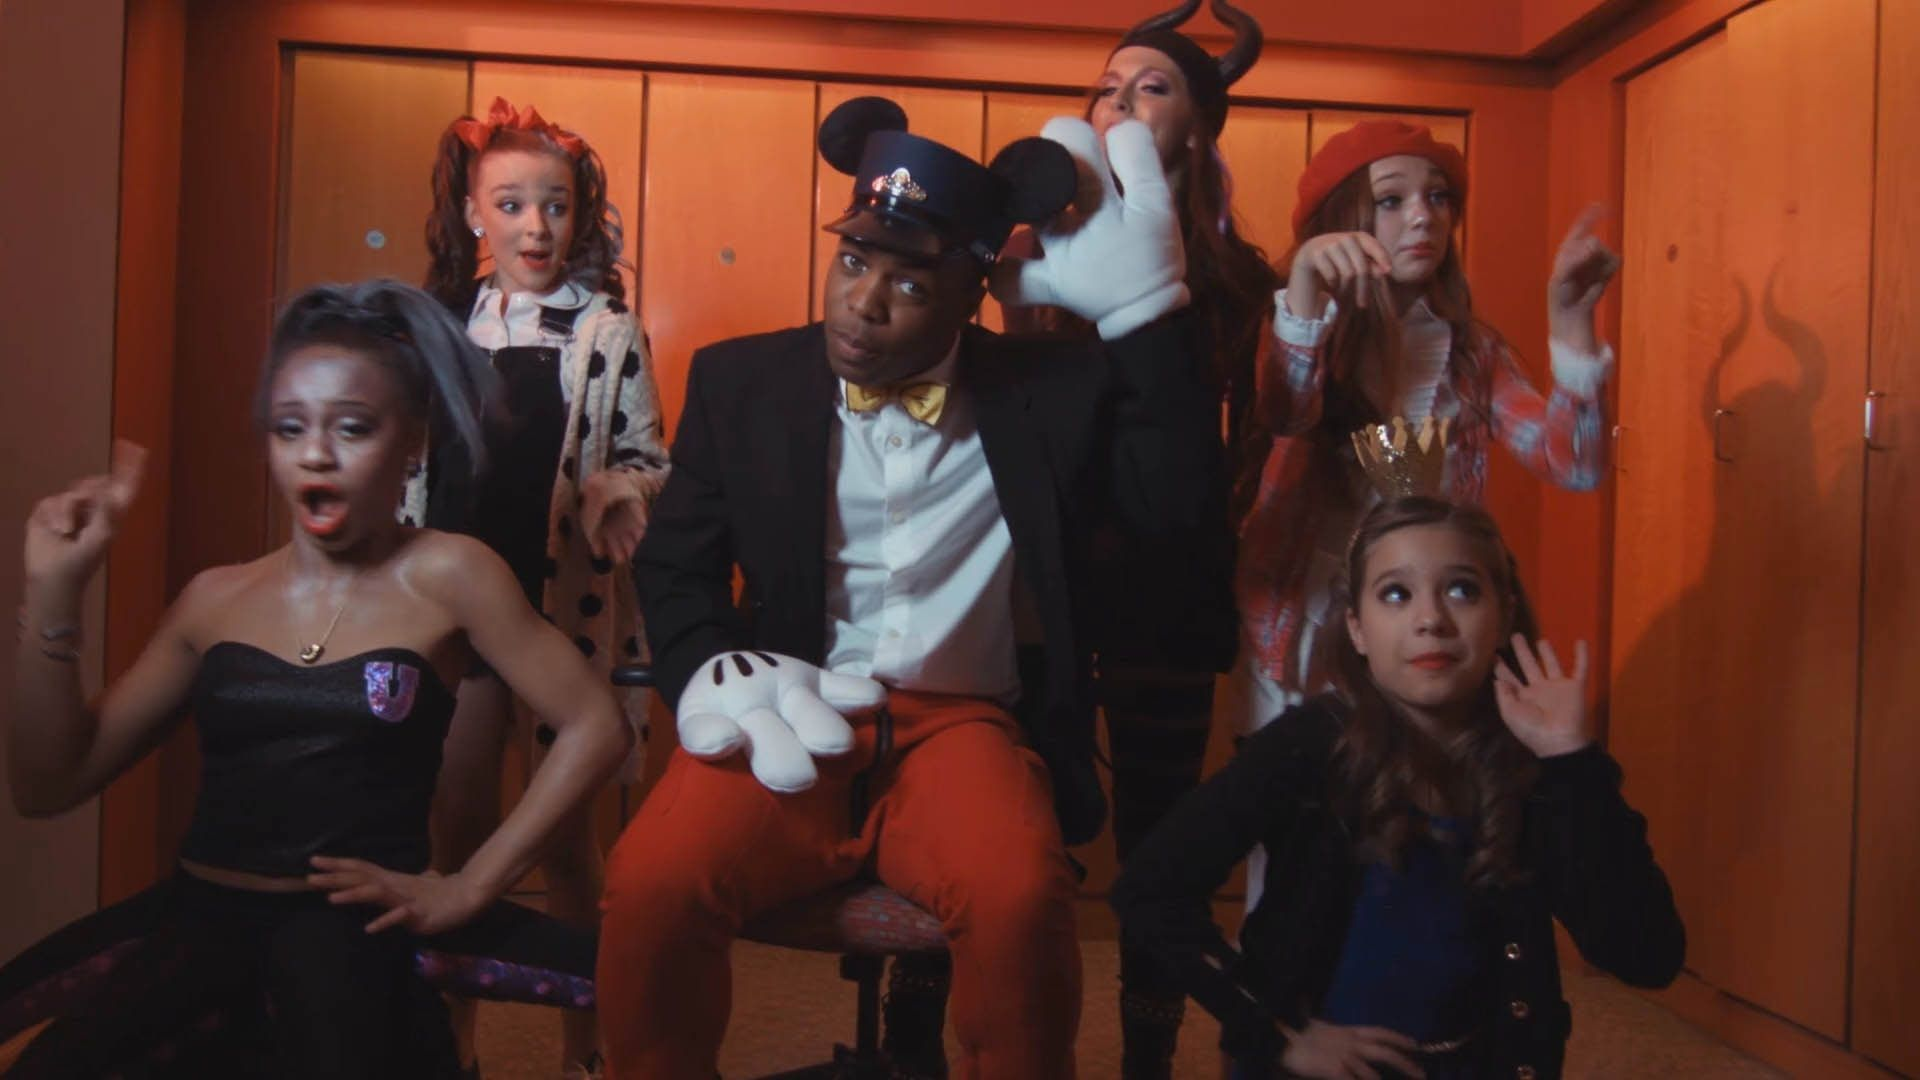 Freaks Like Me by Todrick Hall, featuring the Cast of Dance Moms